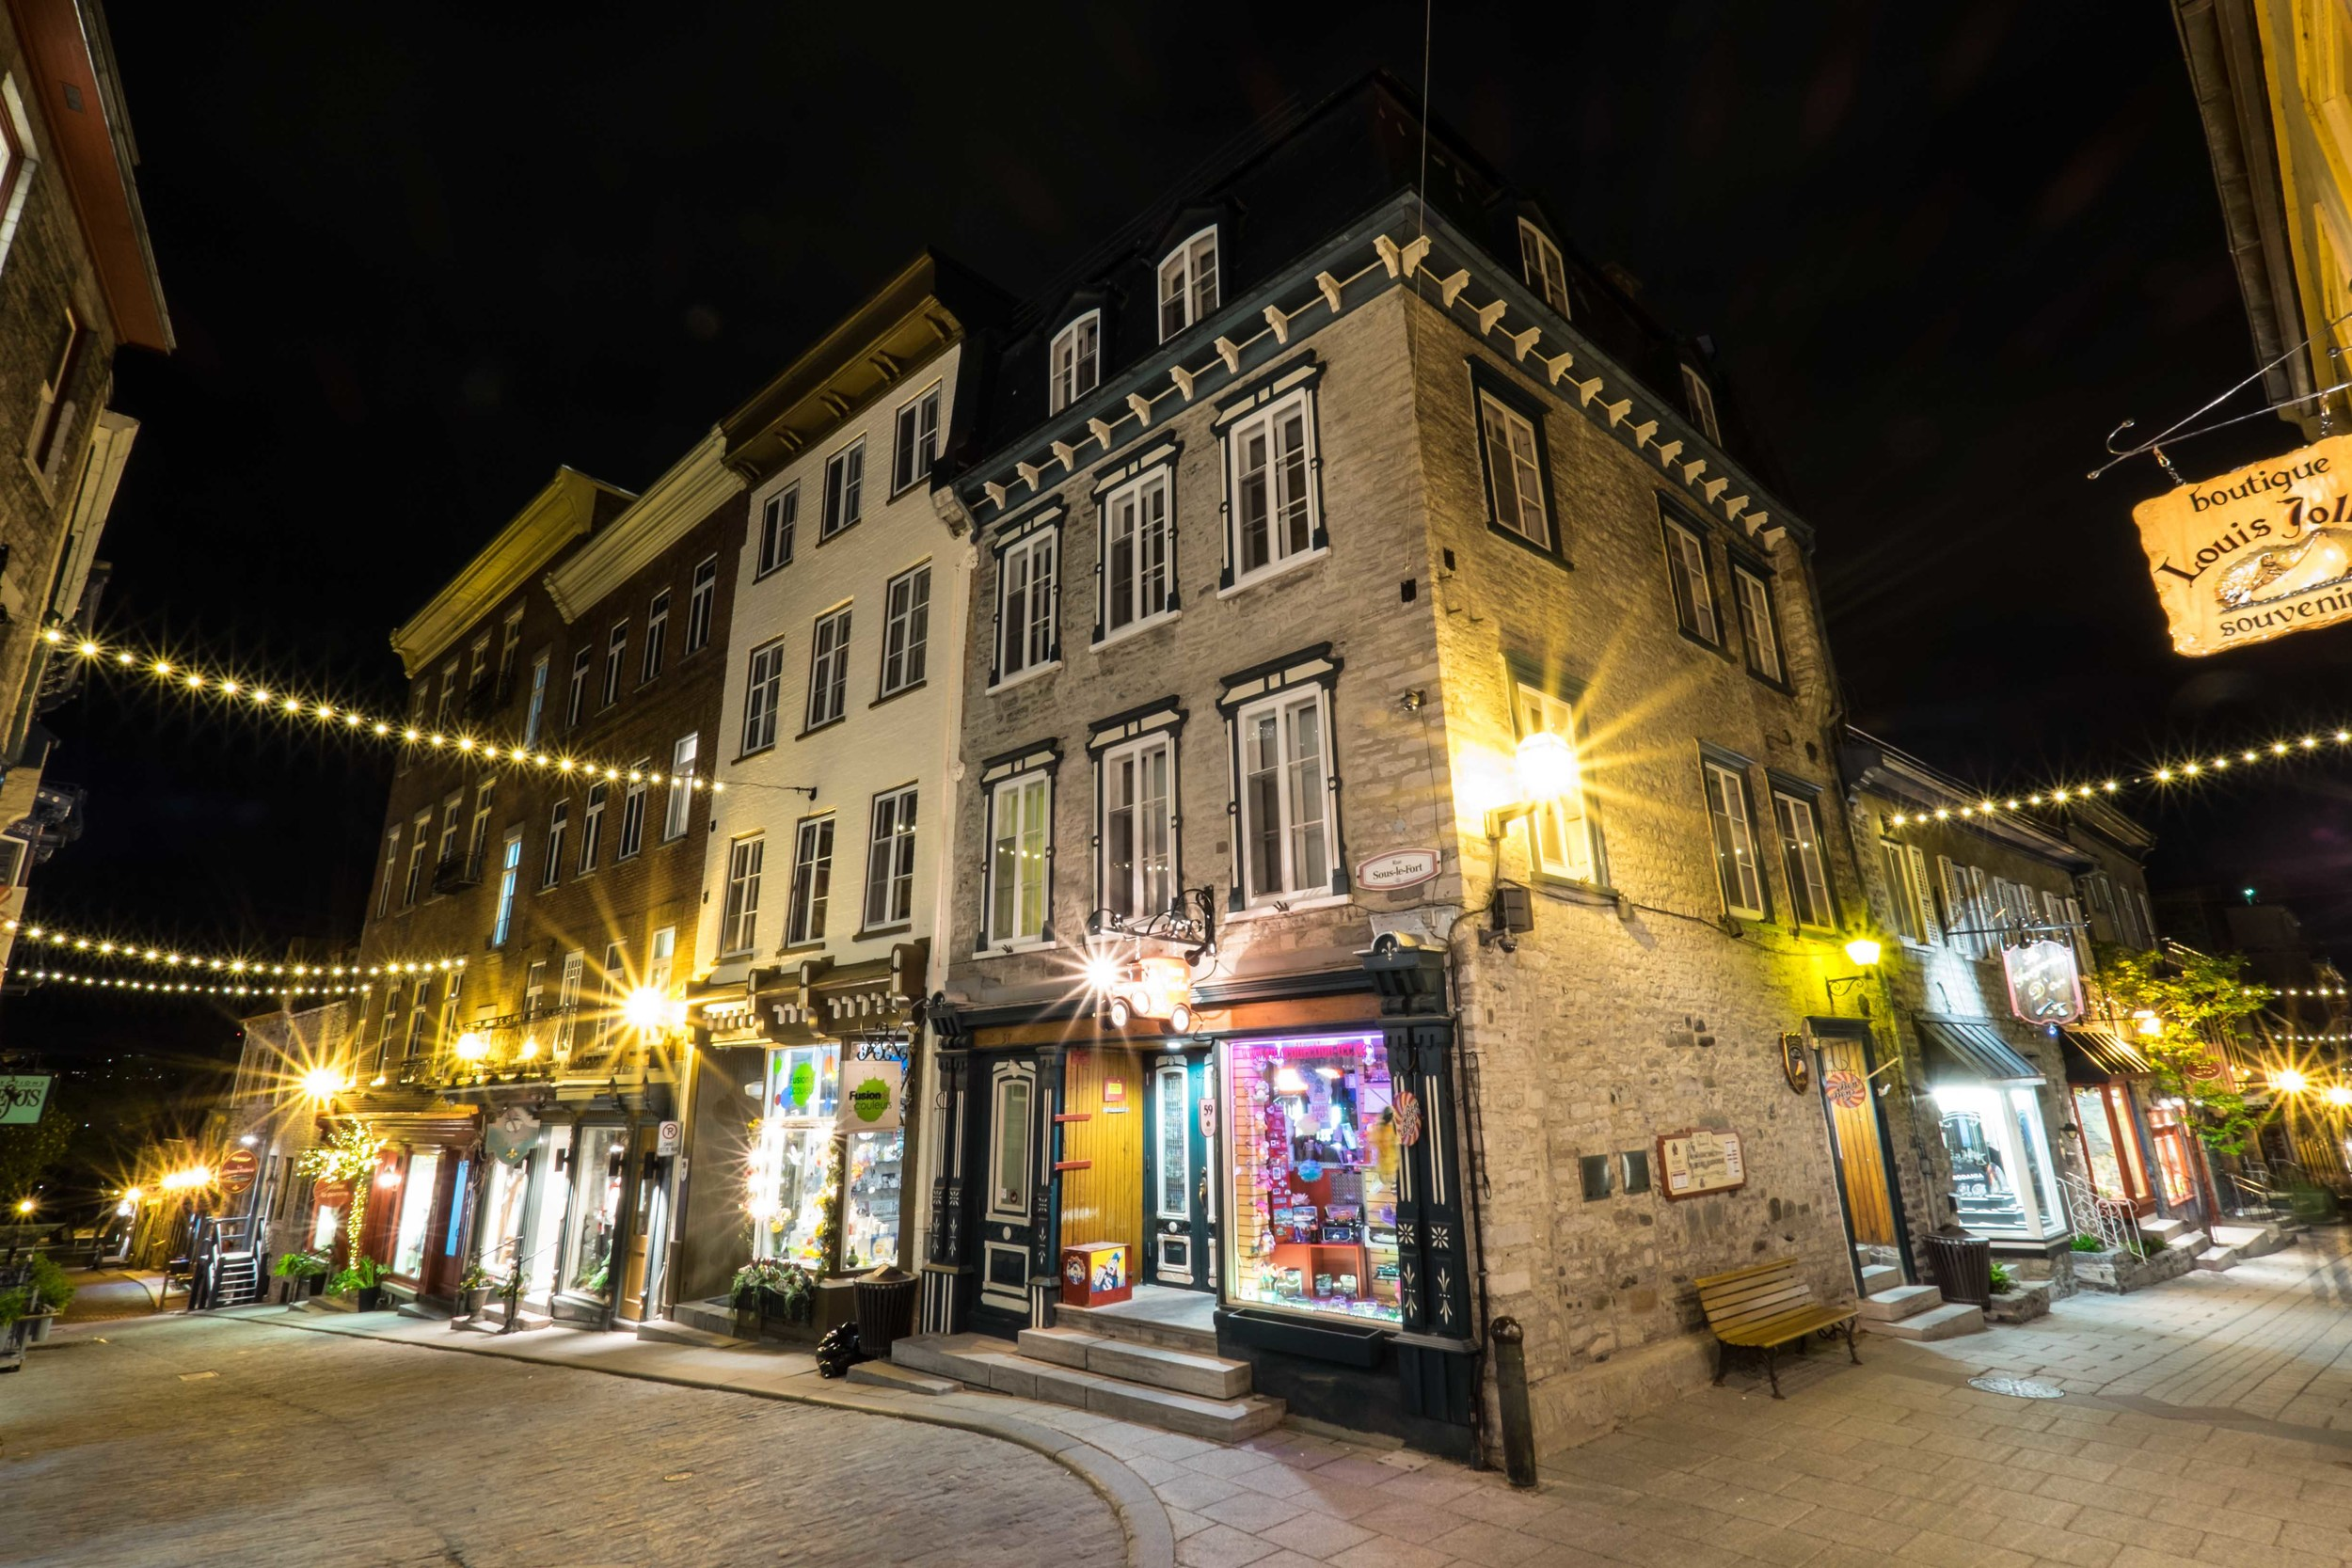 The Charming Streets of Old Quebec after the sun sets